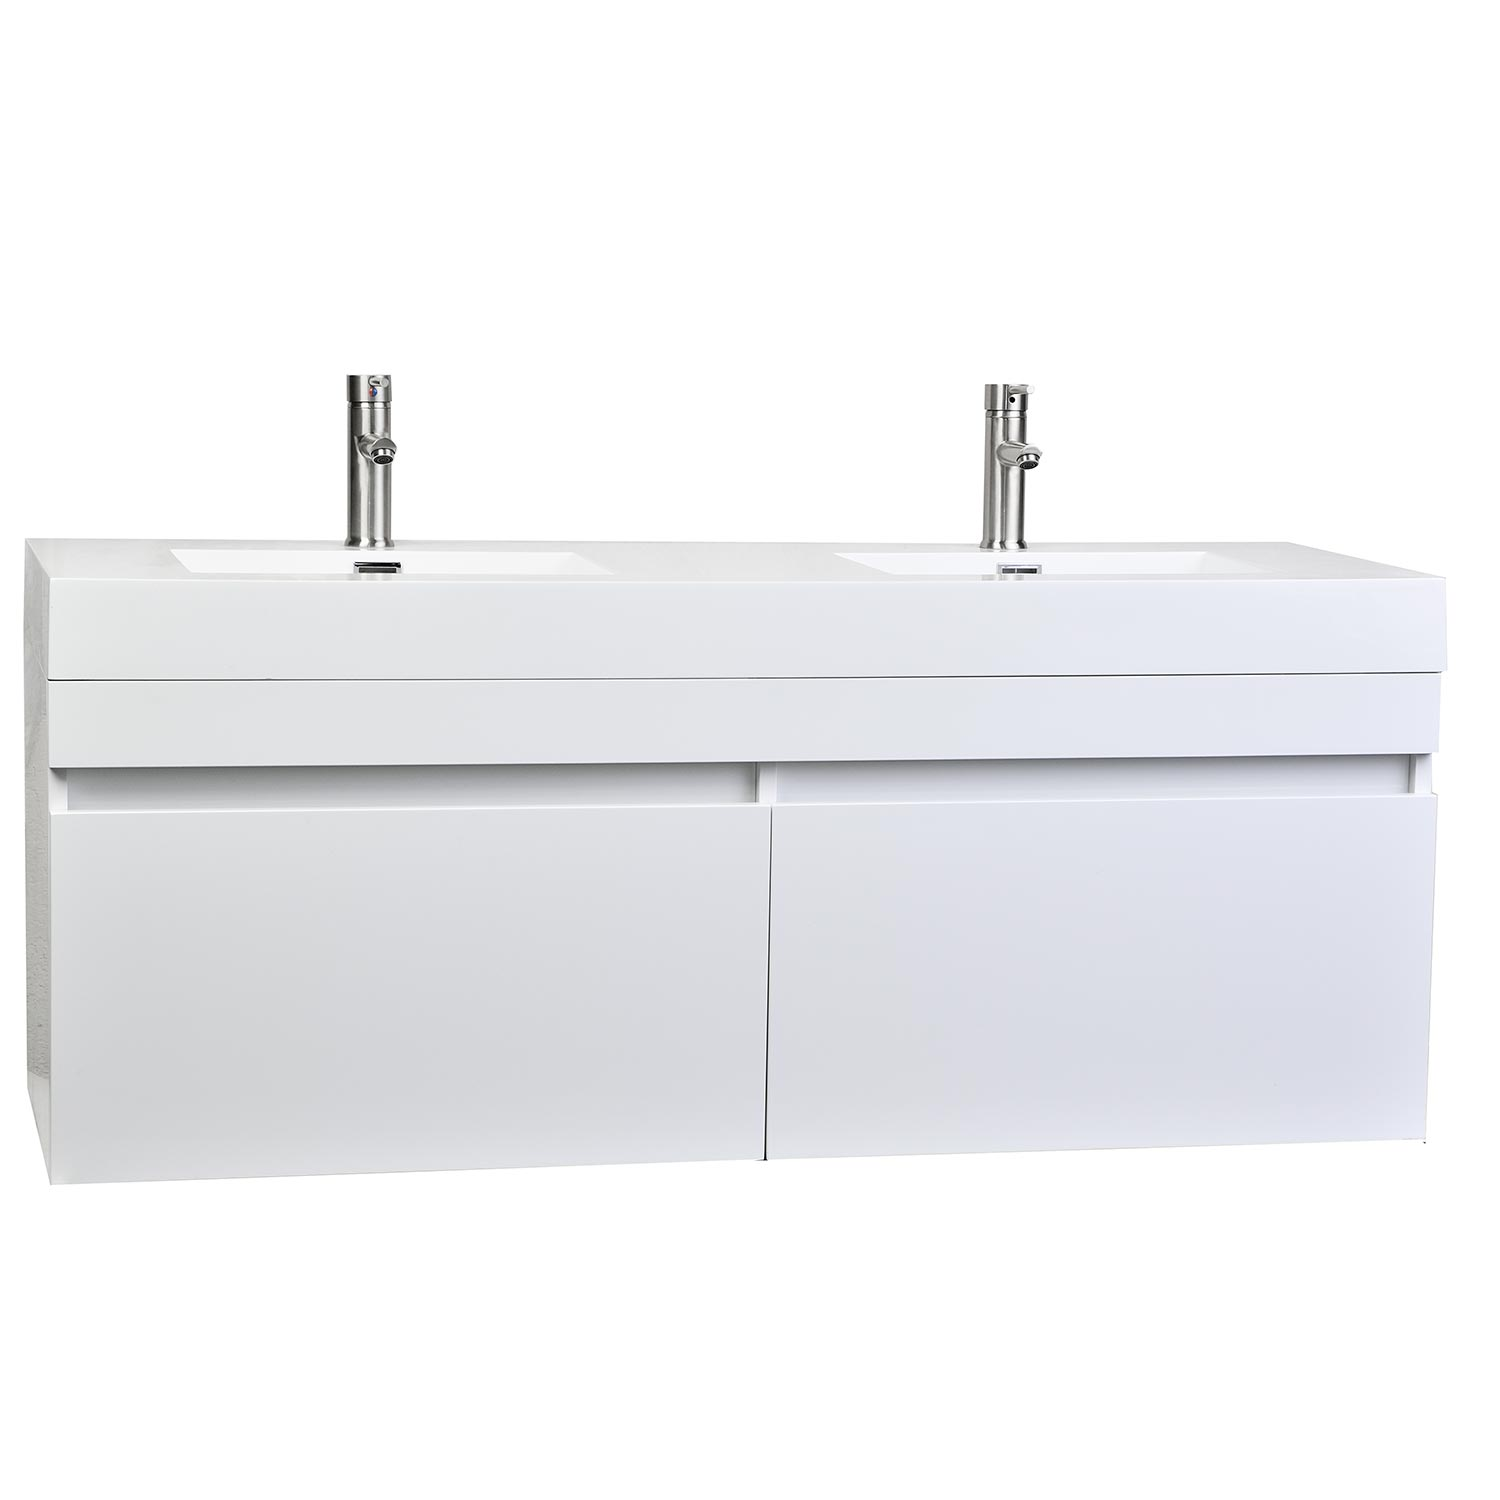 Buy 57 inch modern double sink vanity set in glossy white - Contemporary double sink bathroom vanity ...